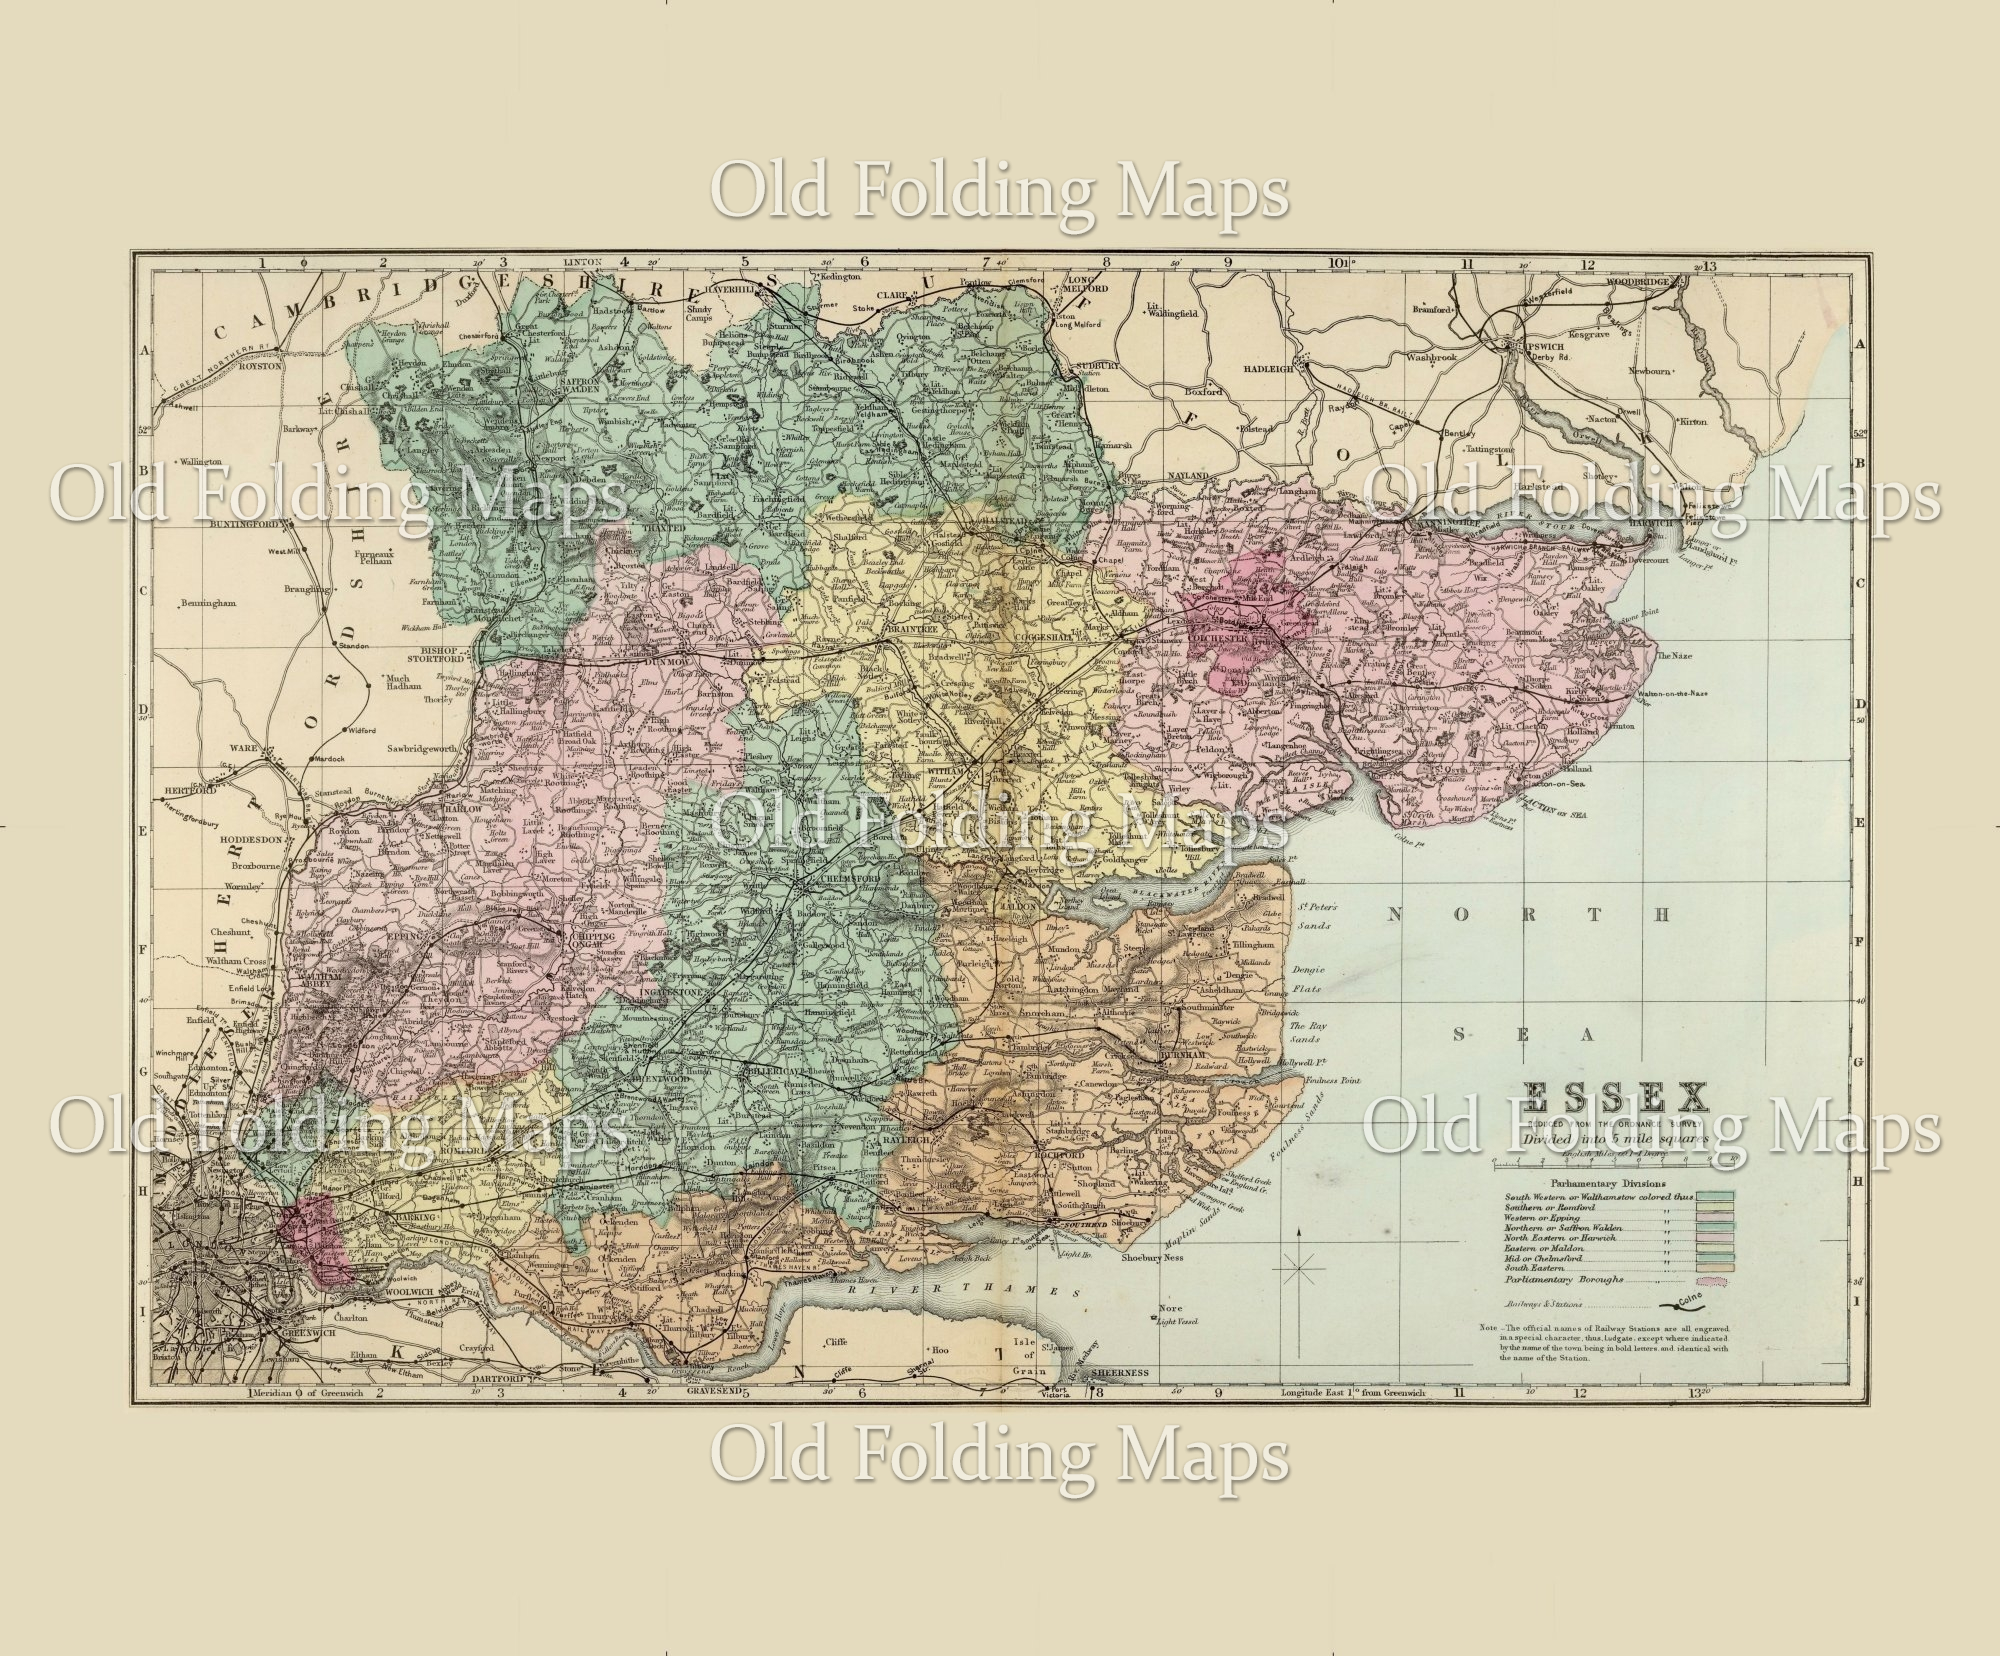 Antique County Map of Essex circa 1885